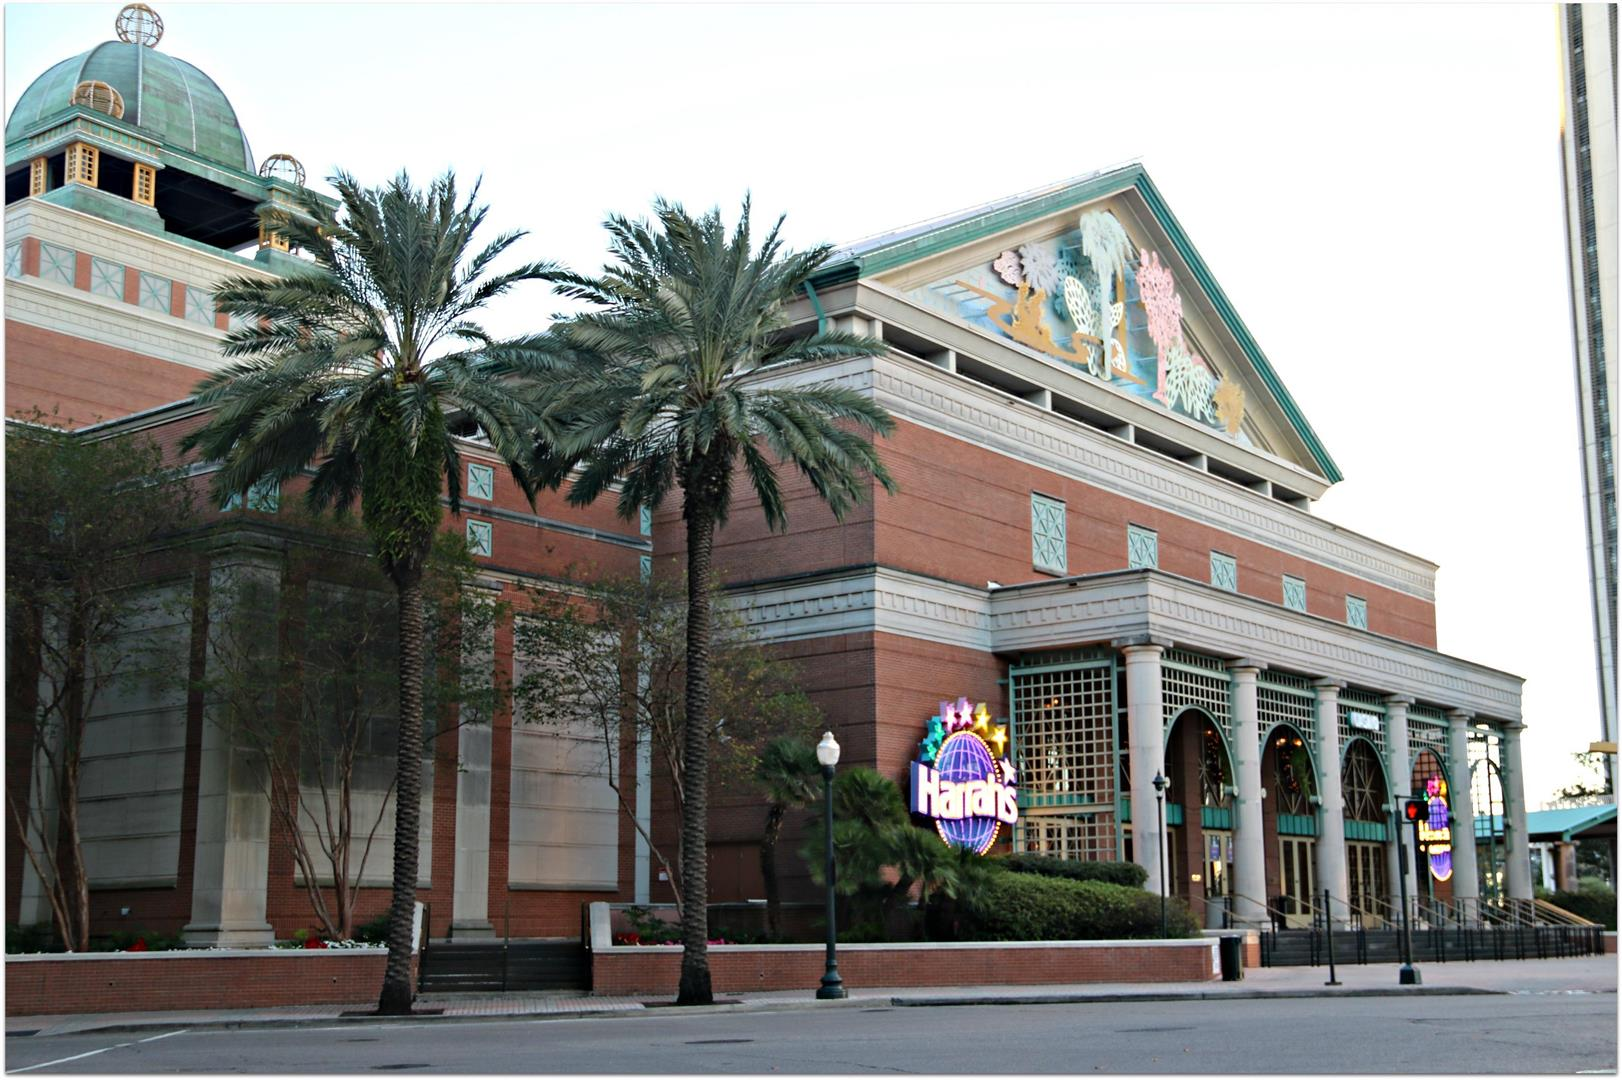 WarehouseDistrict,HarrahsCasino.jpg